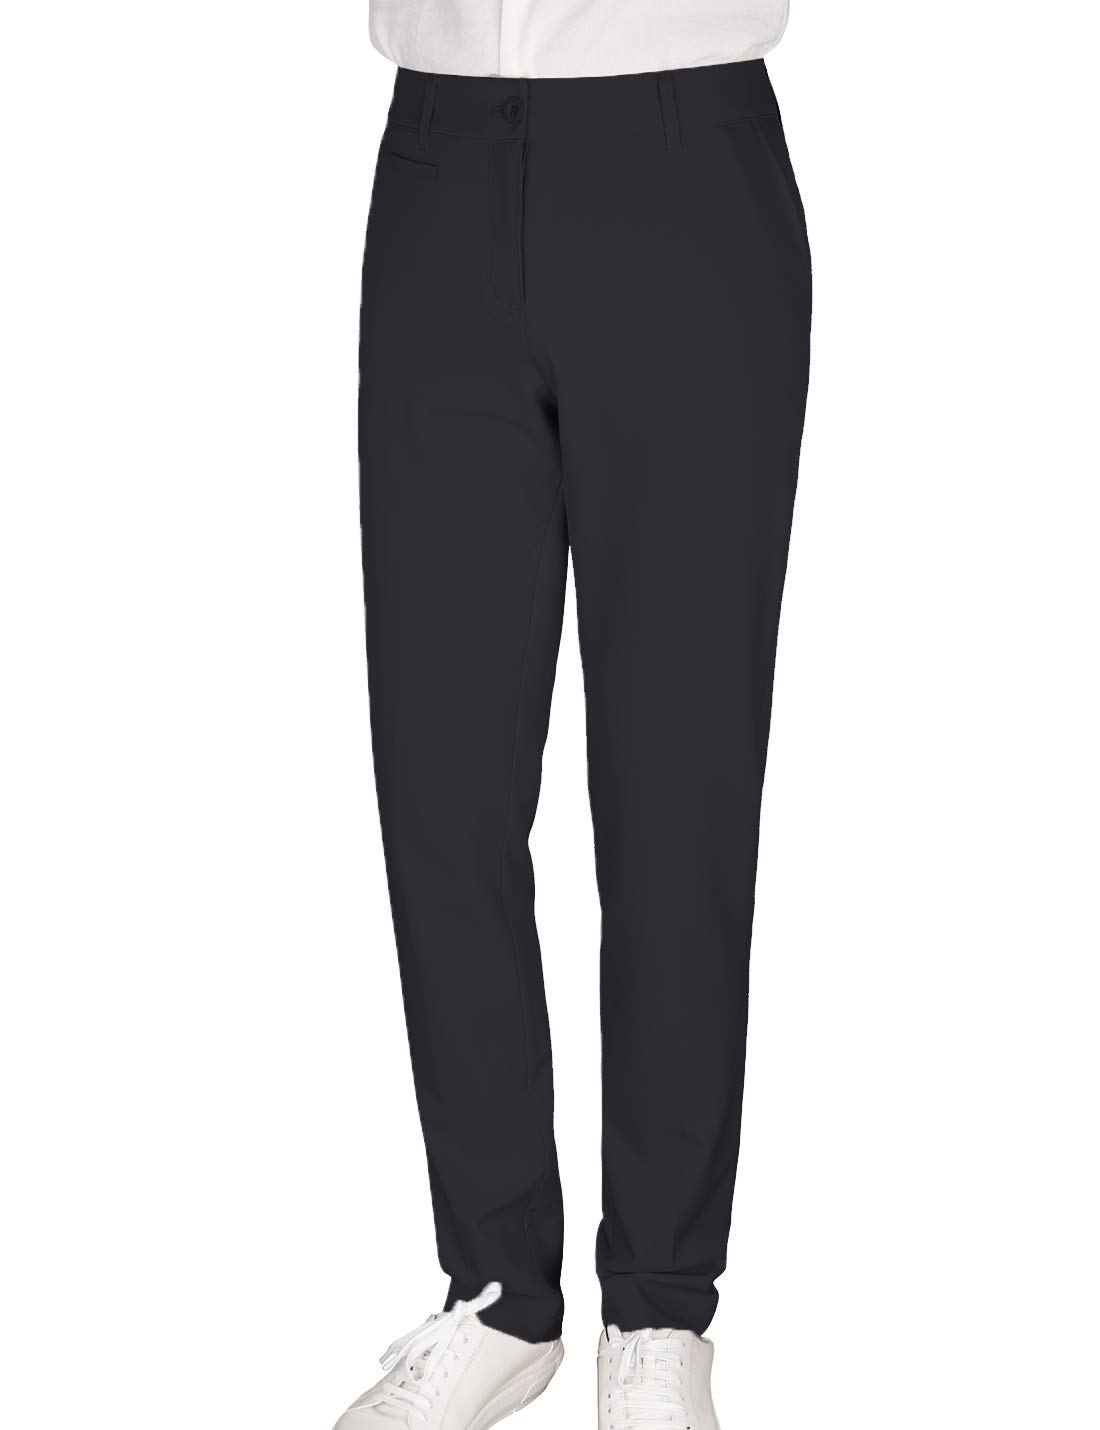 Women's Golf Pants Stretch Straight Lightweight Breathable Twill Work Chino Ladies Pants Size 14 Black by Bakery